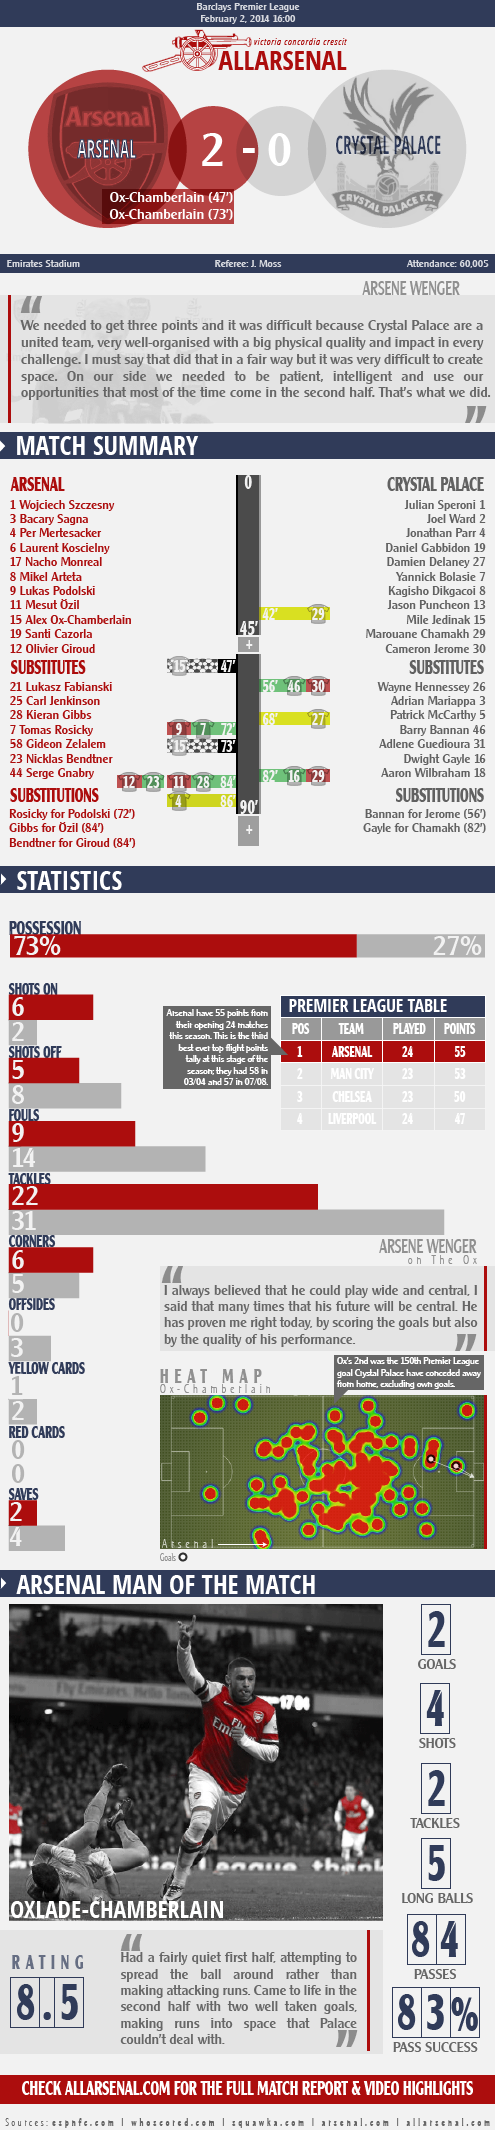 arsenal 2 v 0 crystal palace allarsenal infographic match report-01